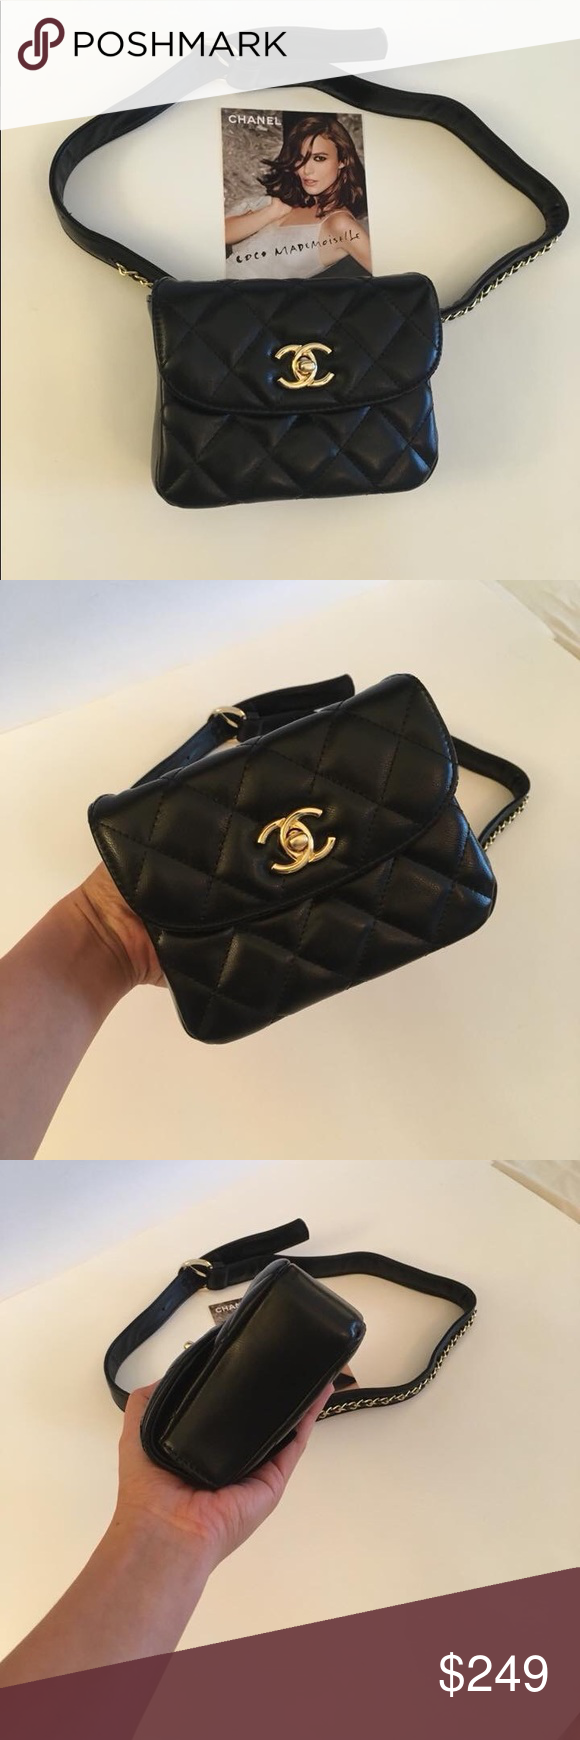 96432efdde0 Chanel VIP Gift Fanny Pack Waist Belt Quilted Bag Brand new. Beautiful VIP  gift fanny